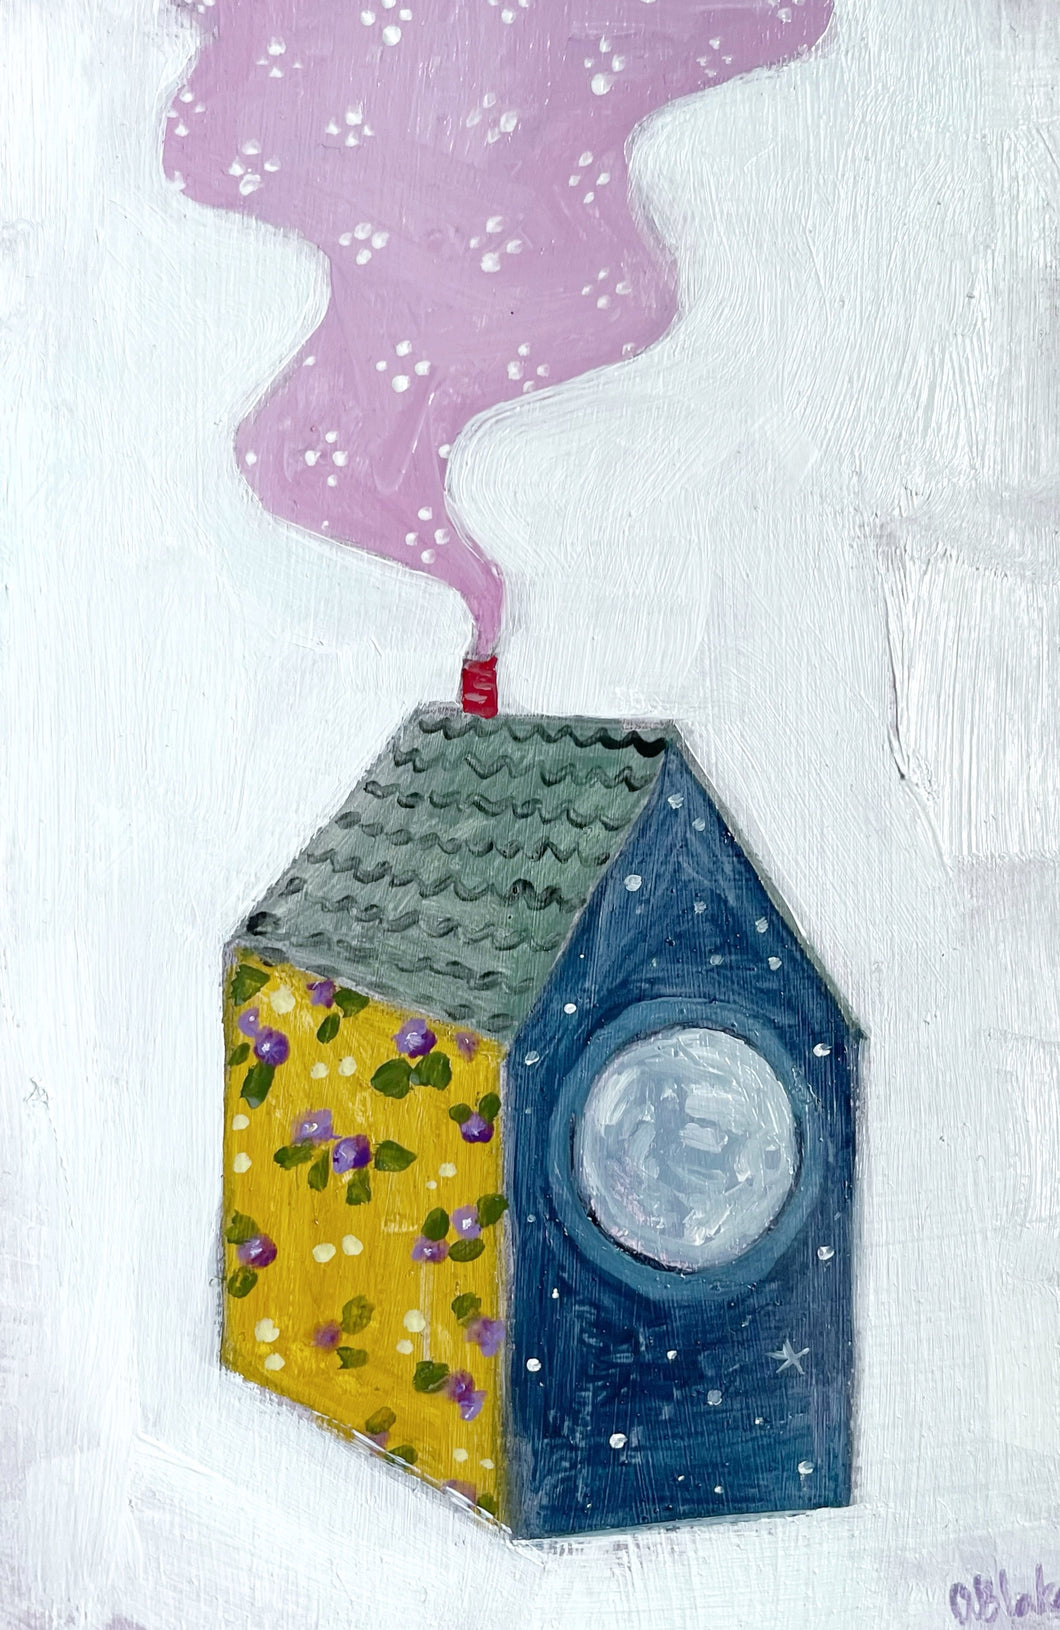 A home made of moonlight and violets